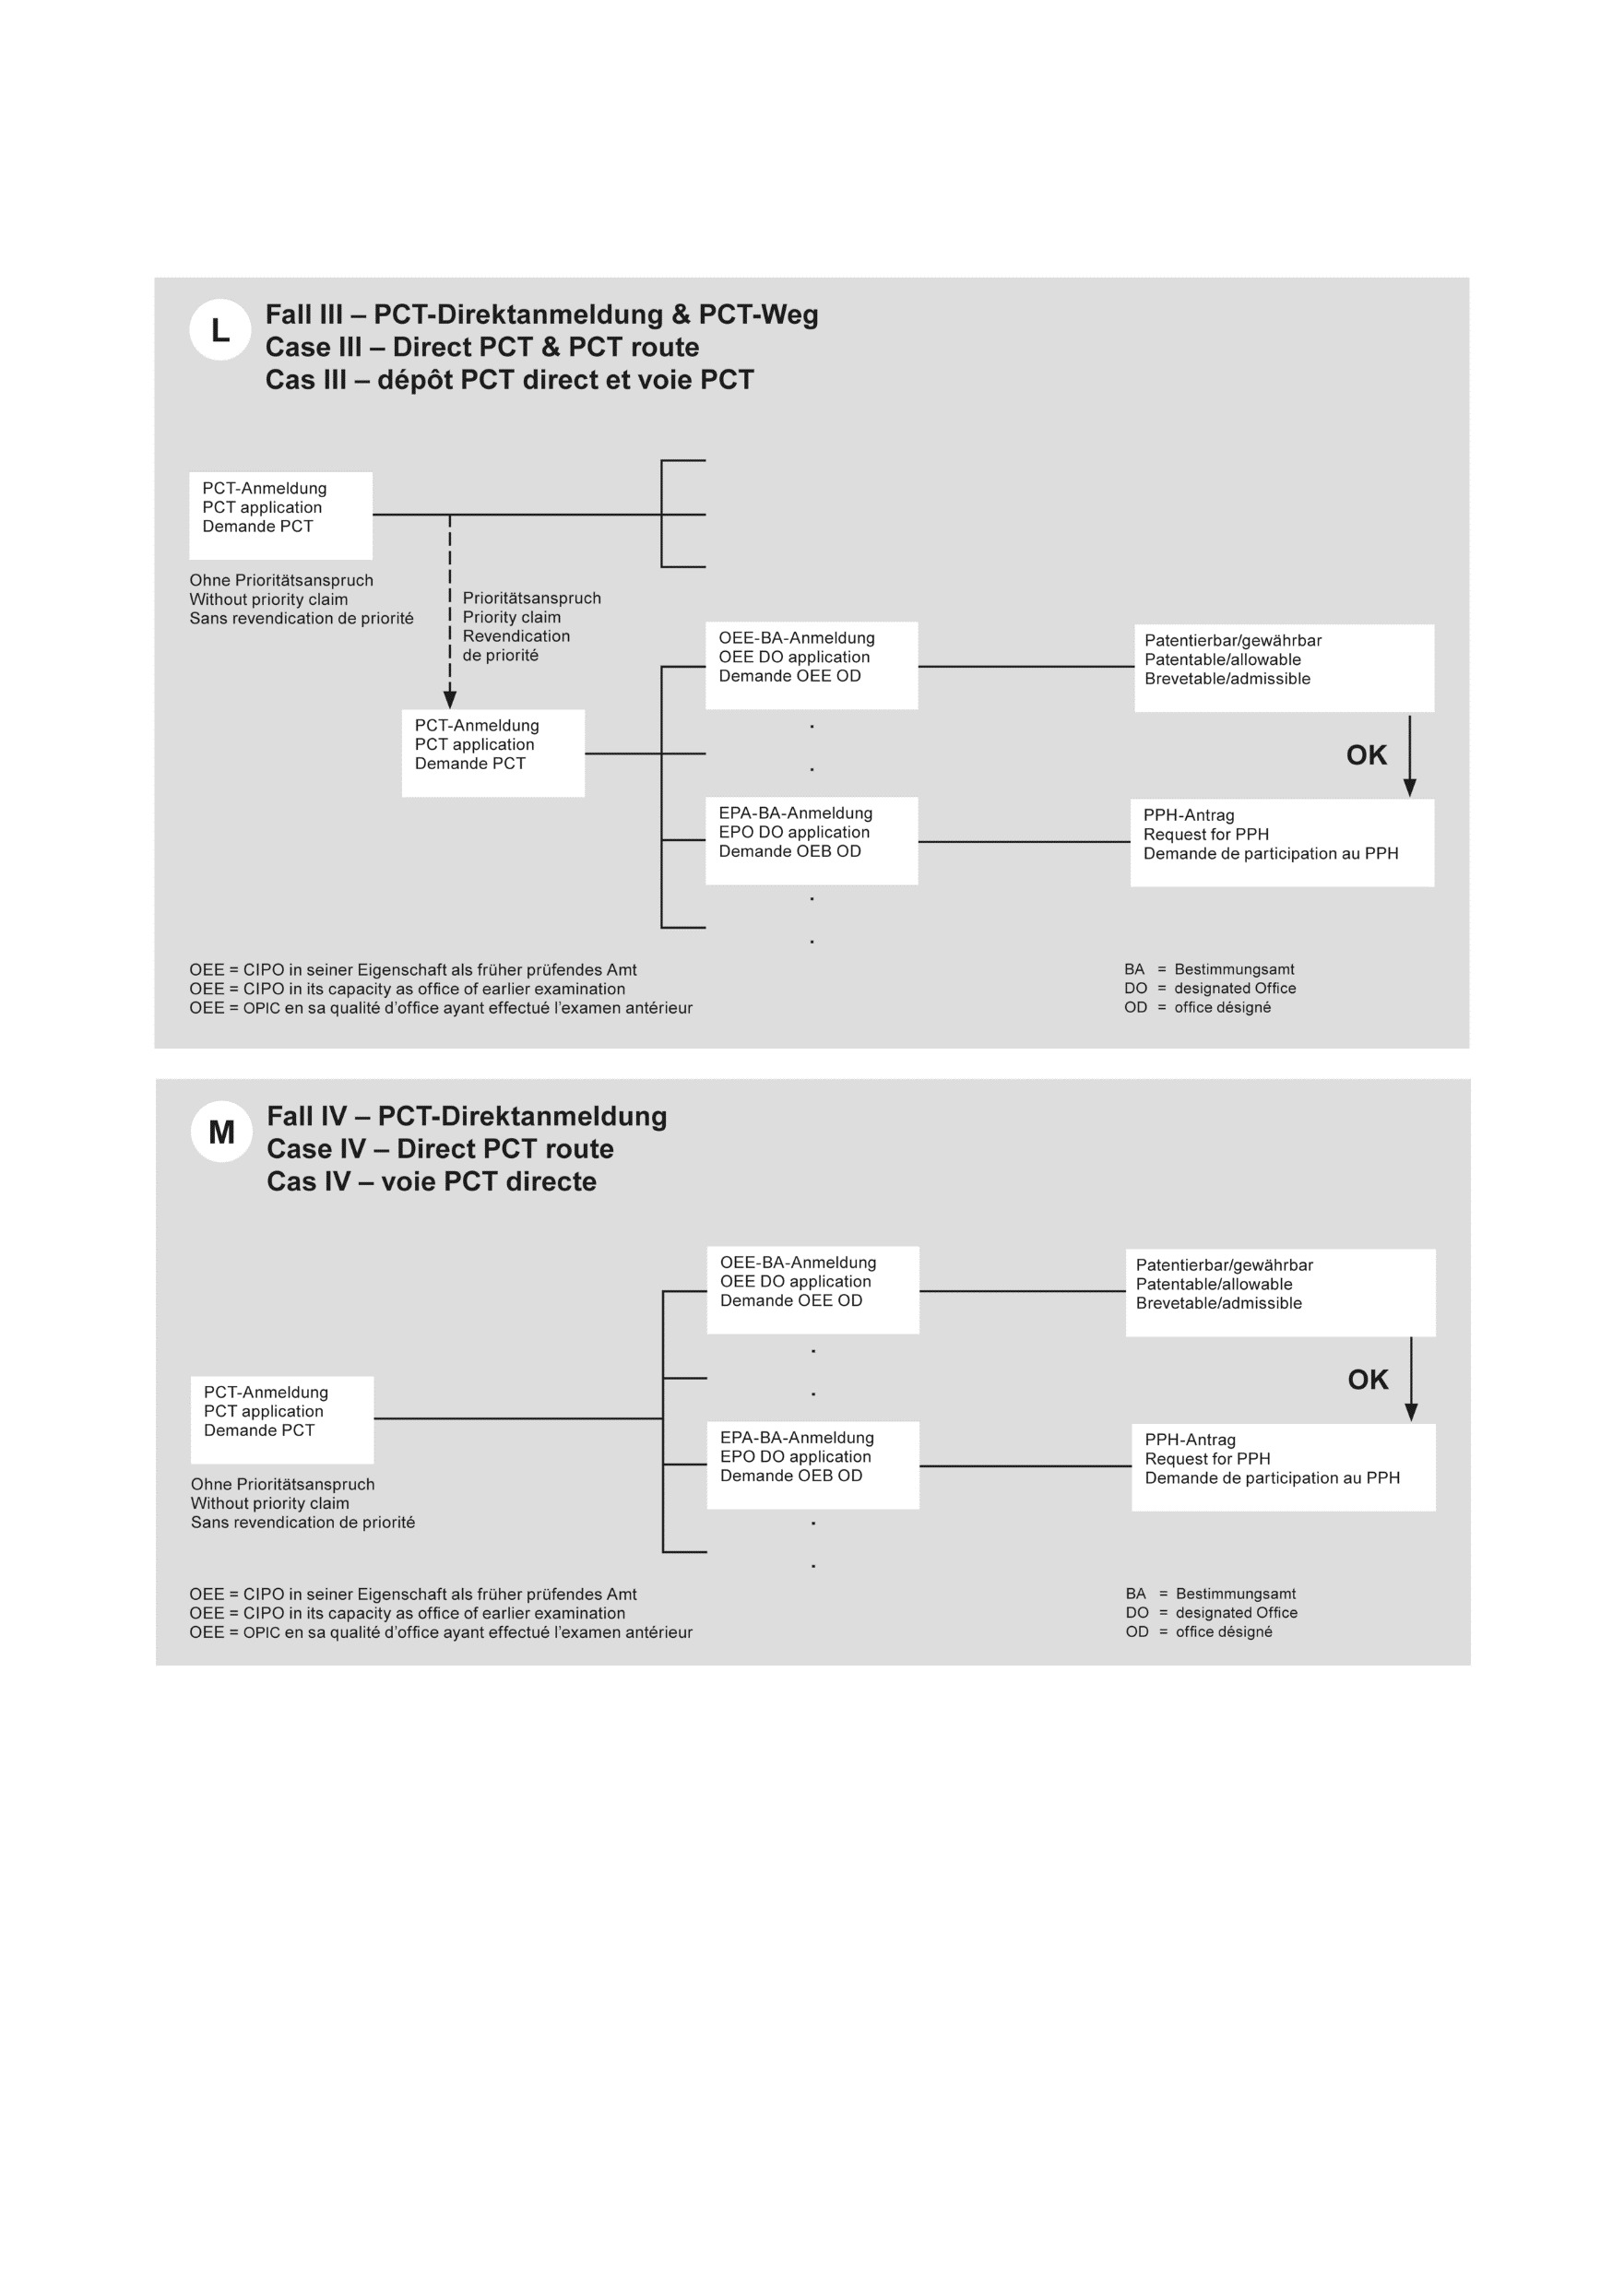 epo patent prosecution highway pilot programme between the